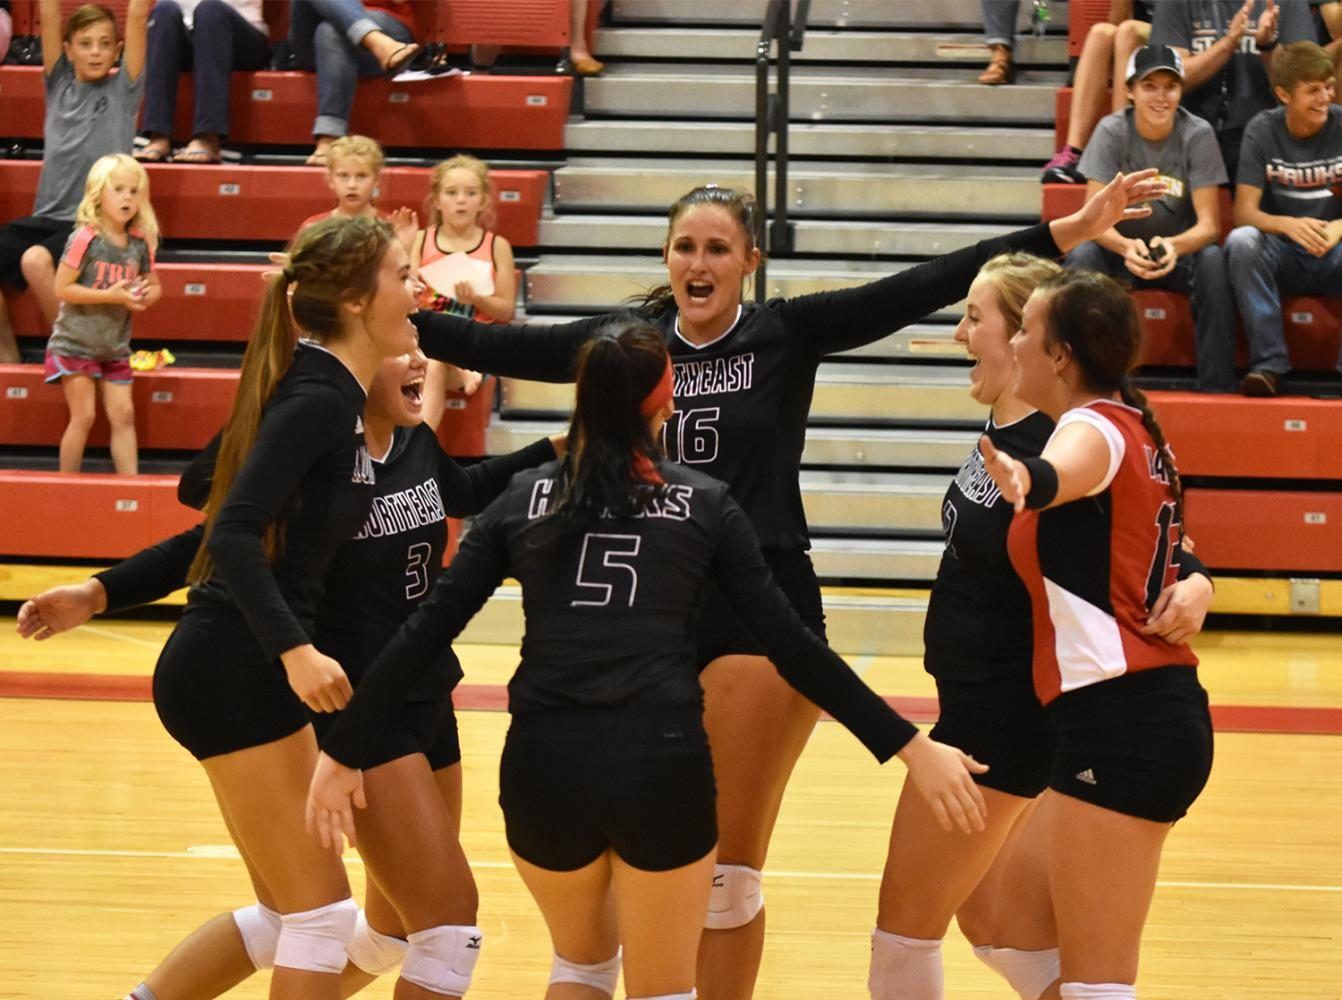 Hawks volleyball goes 1-1 in day one of Northeast tournament